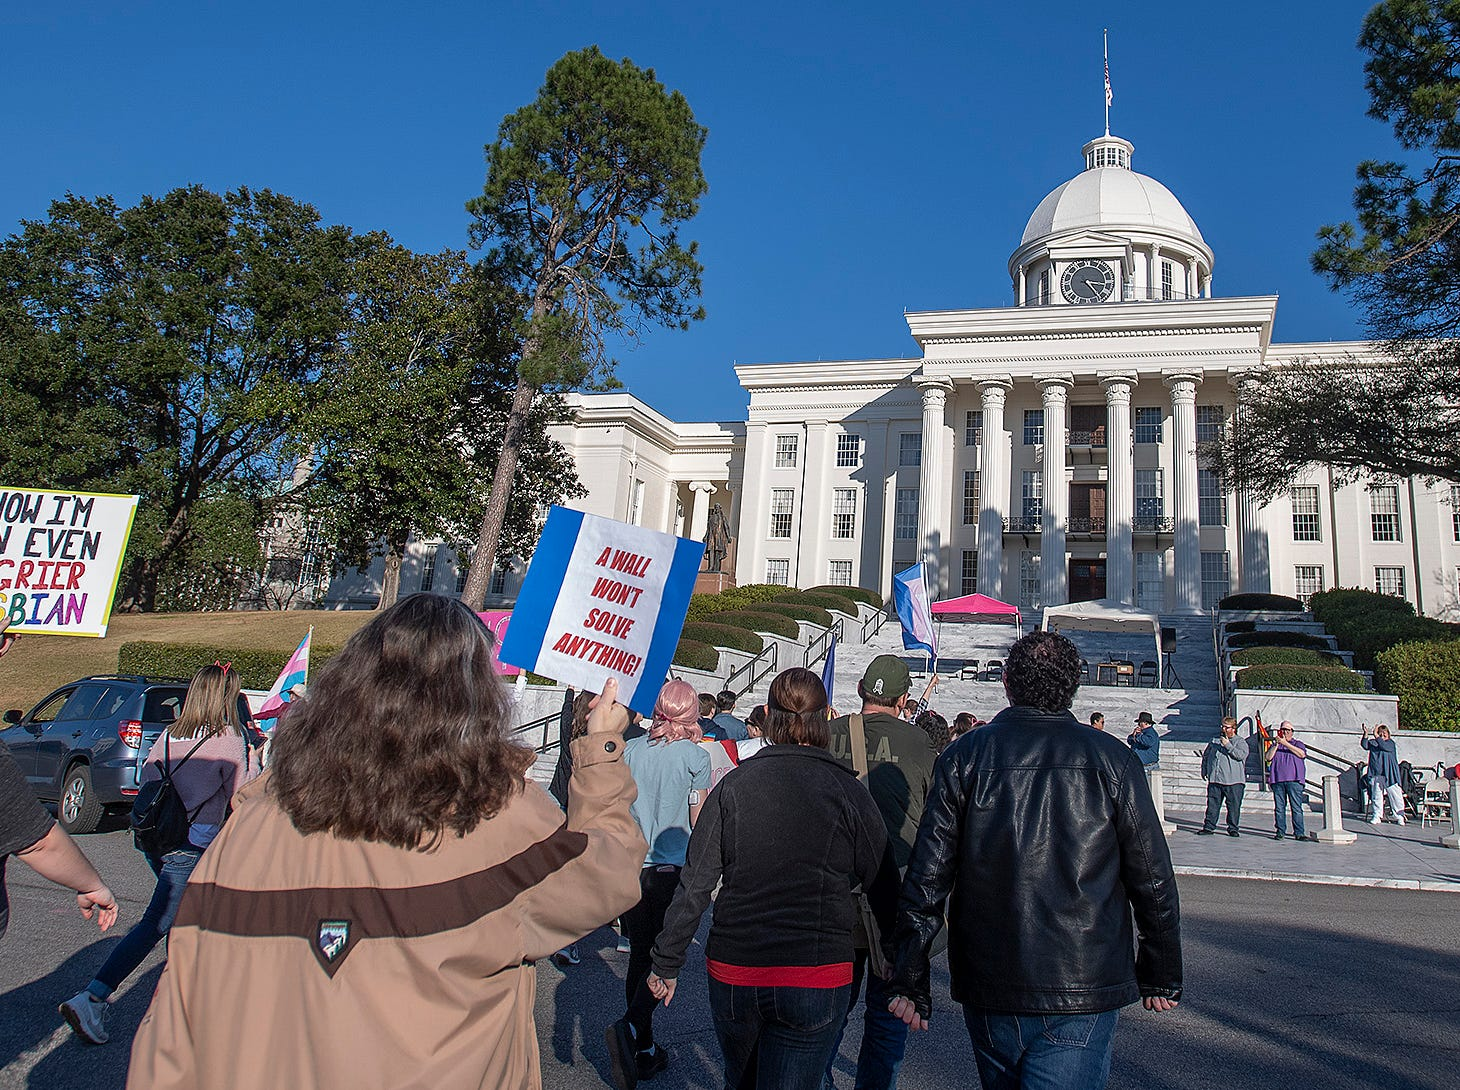 The Montgomery Women's March in downtown Montgomery, Ala., on Saturday January 26, 2019.